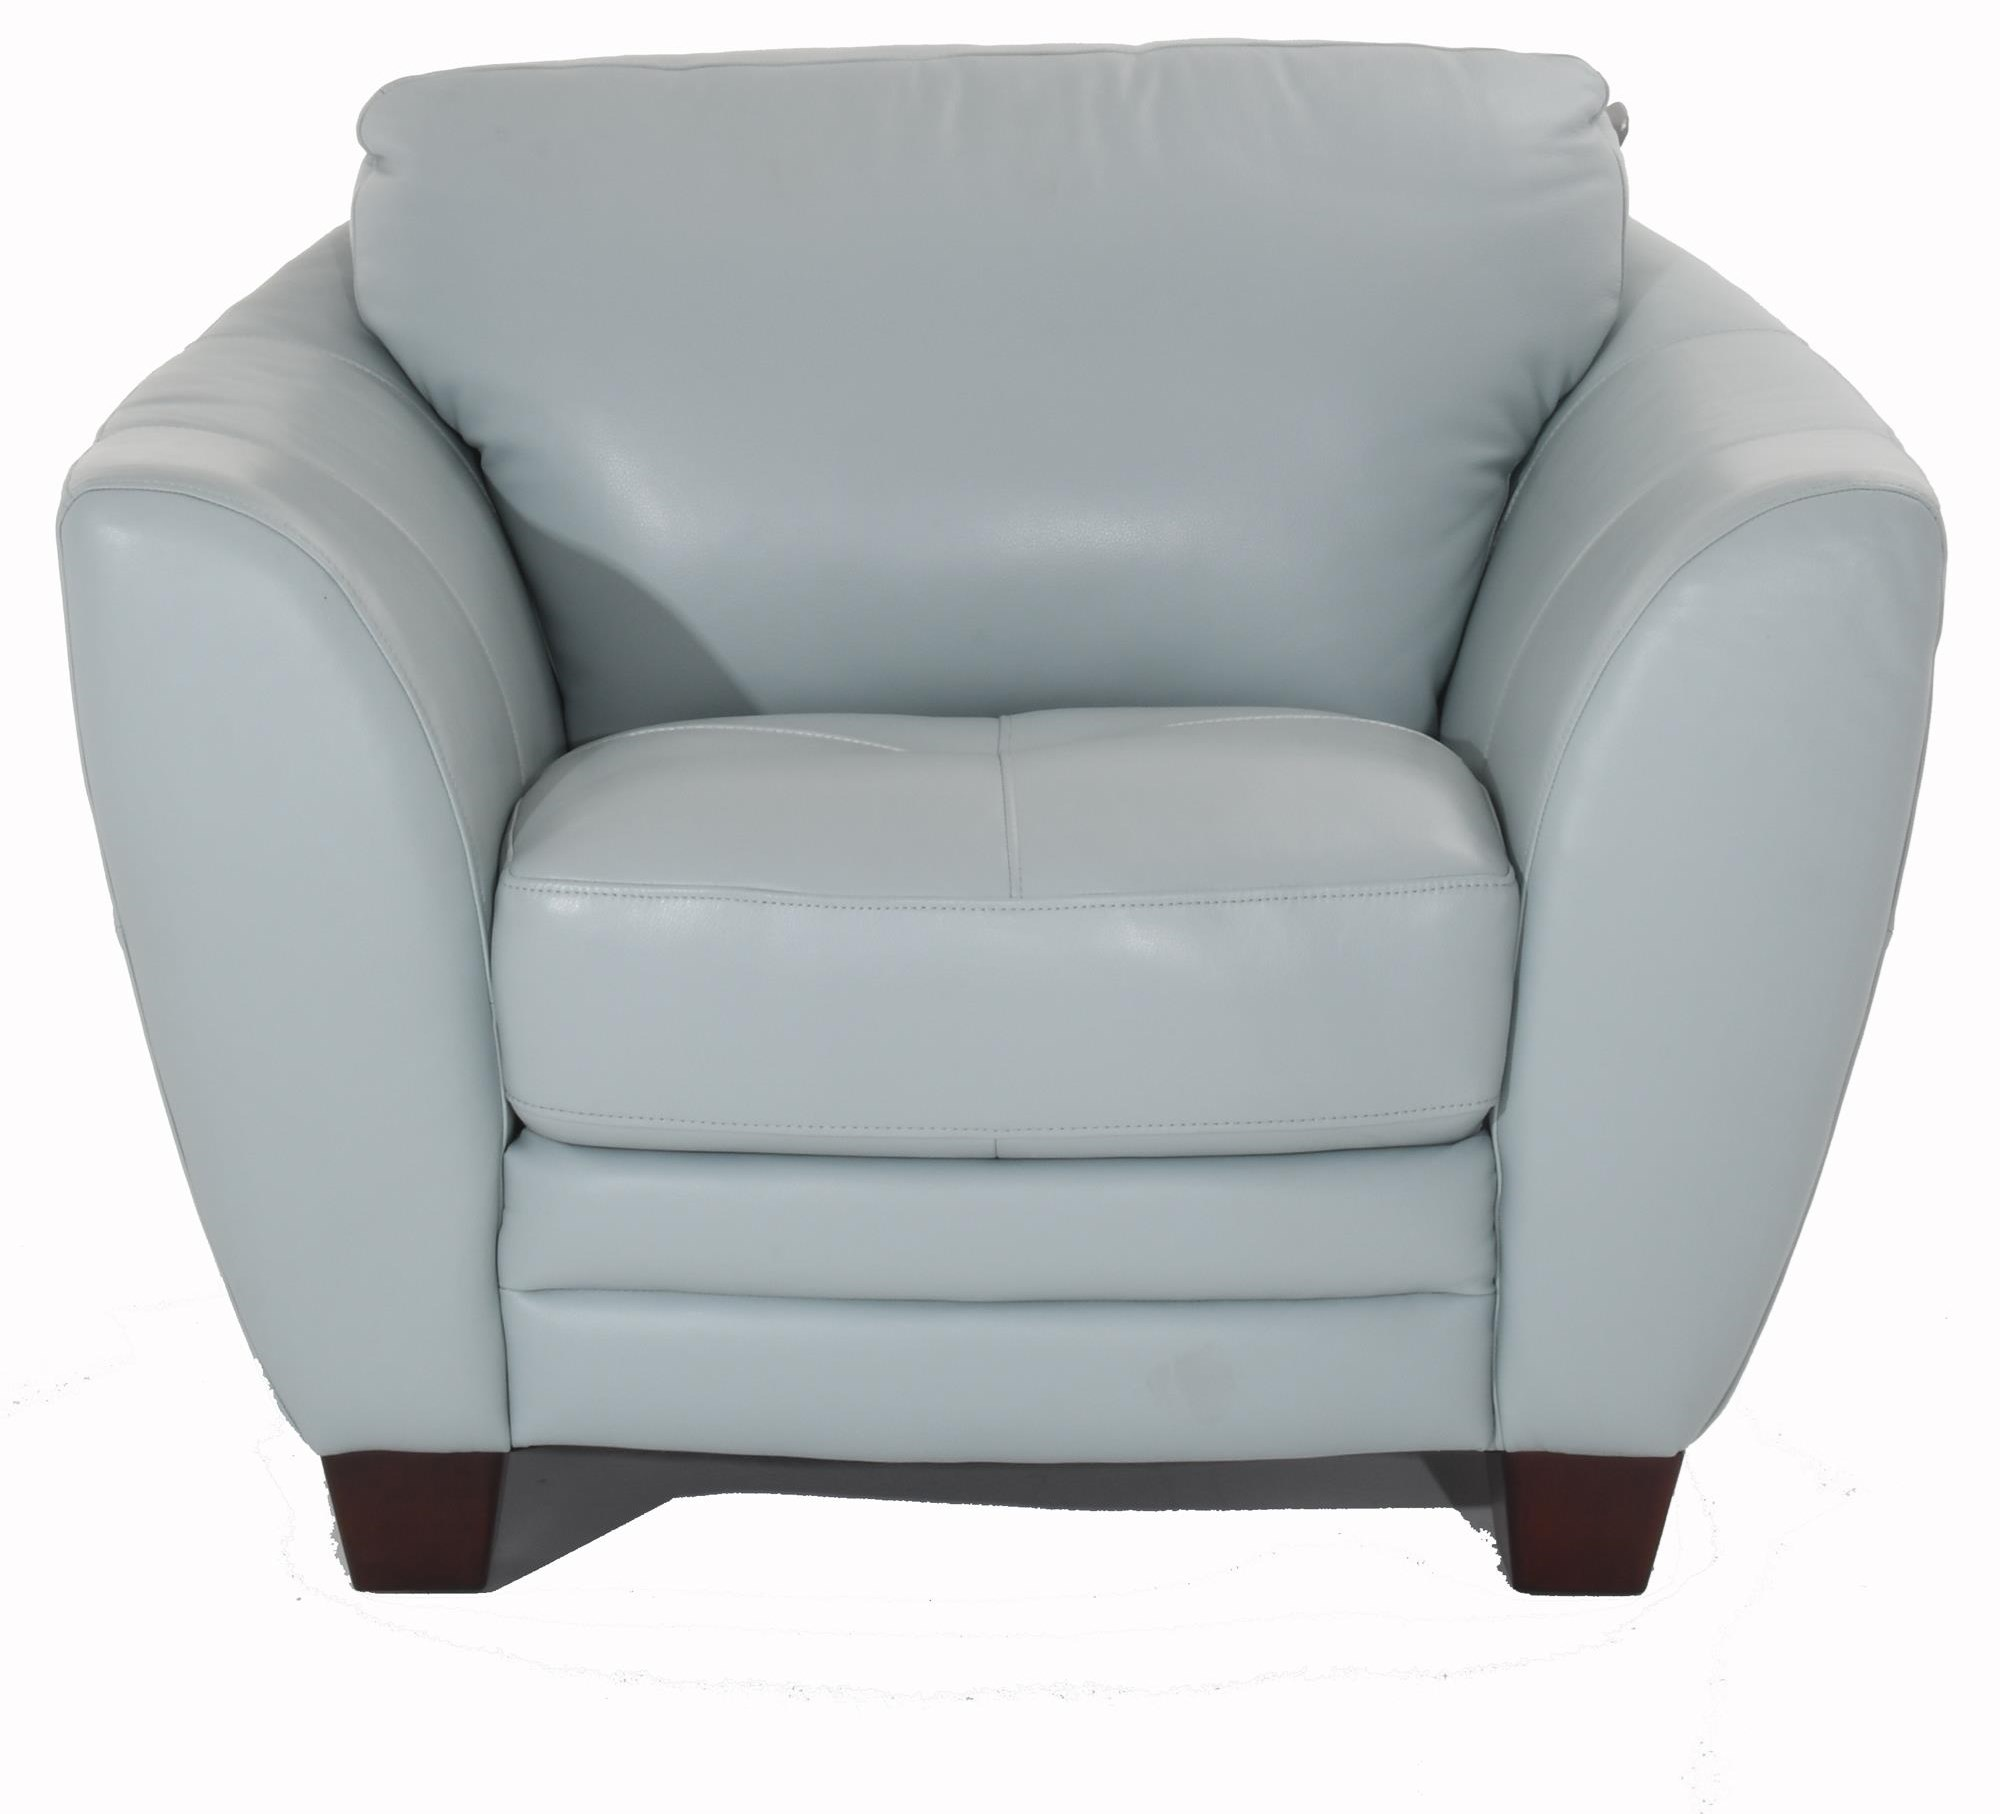 8511 Leather Chair by Futura Leather at Baer's Furniture